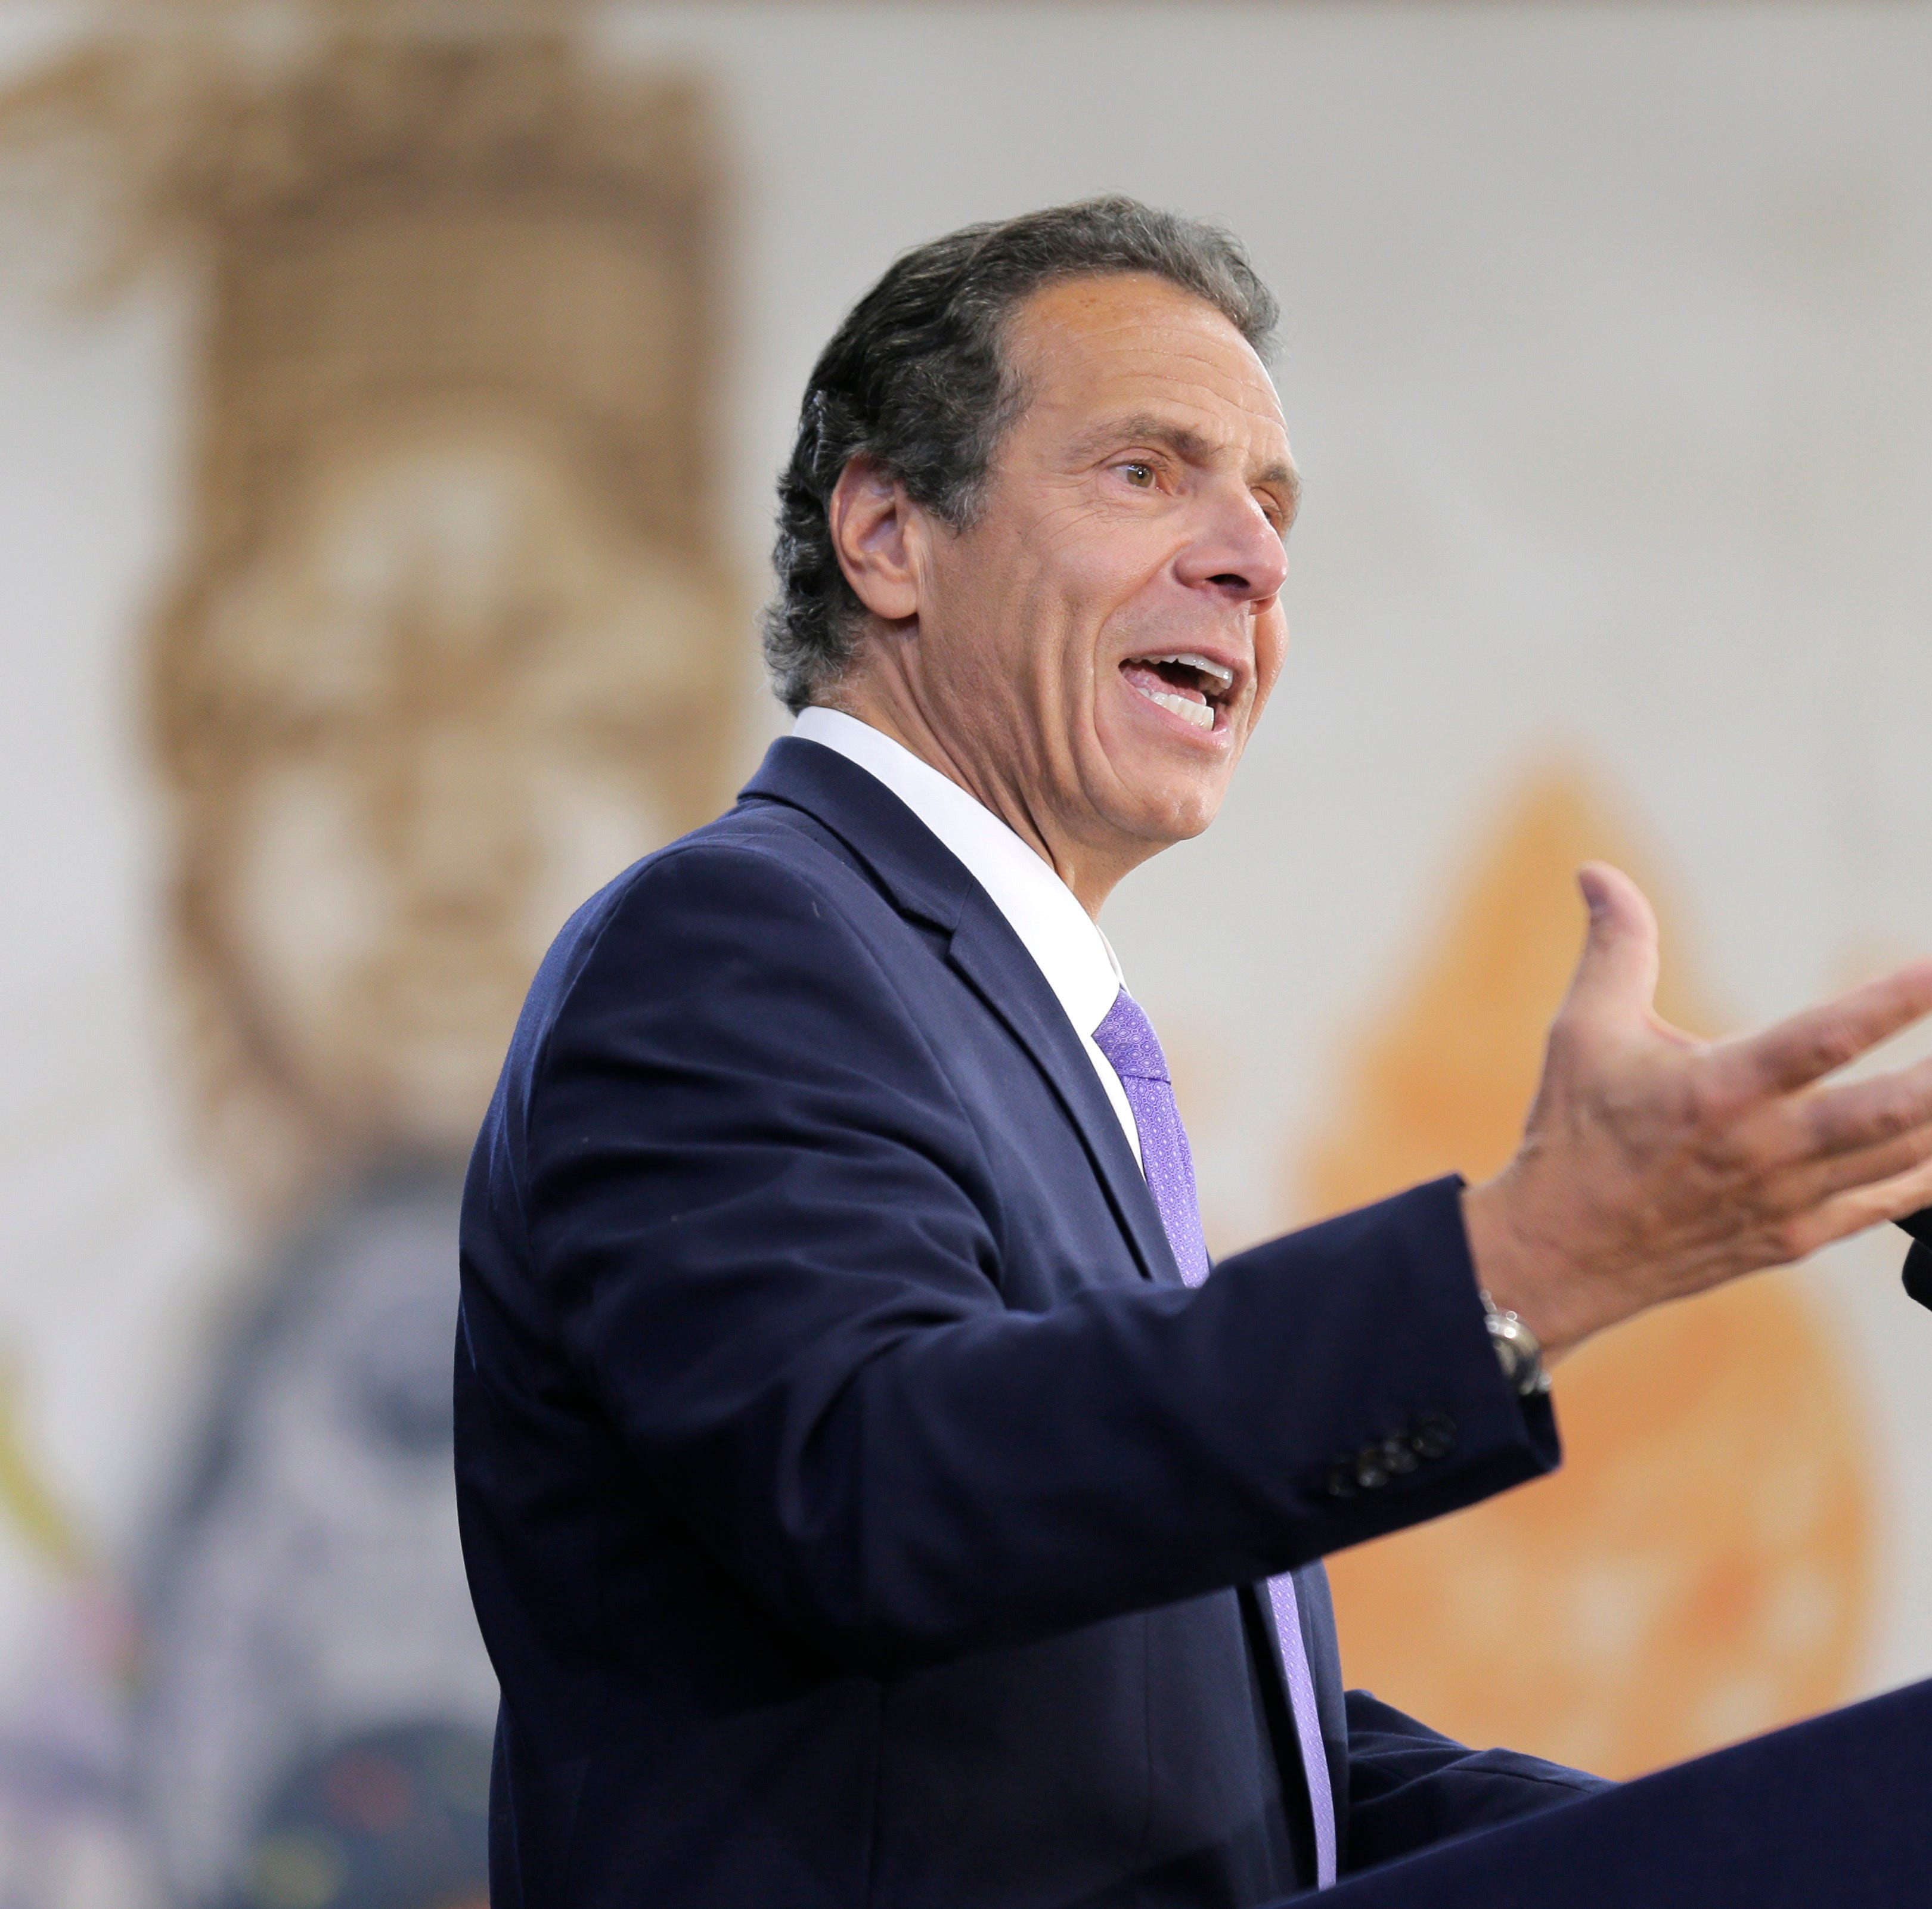 Andrew Cuomo: Legalize recreational marijuana in New York in 2019